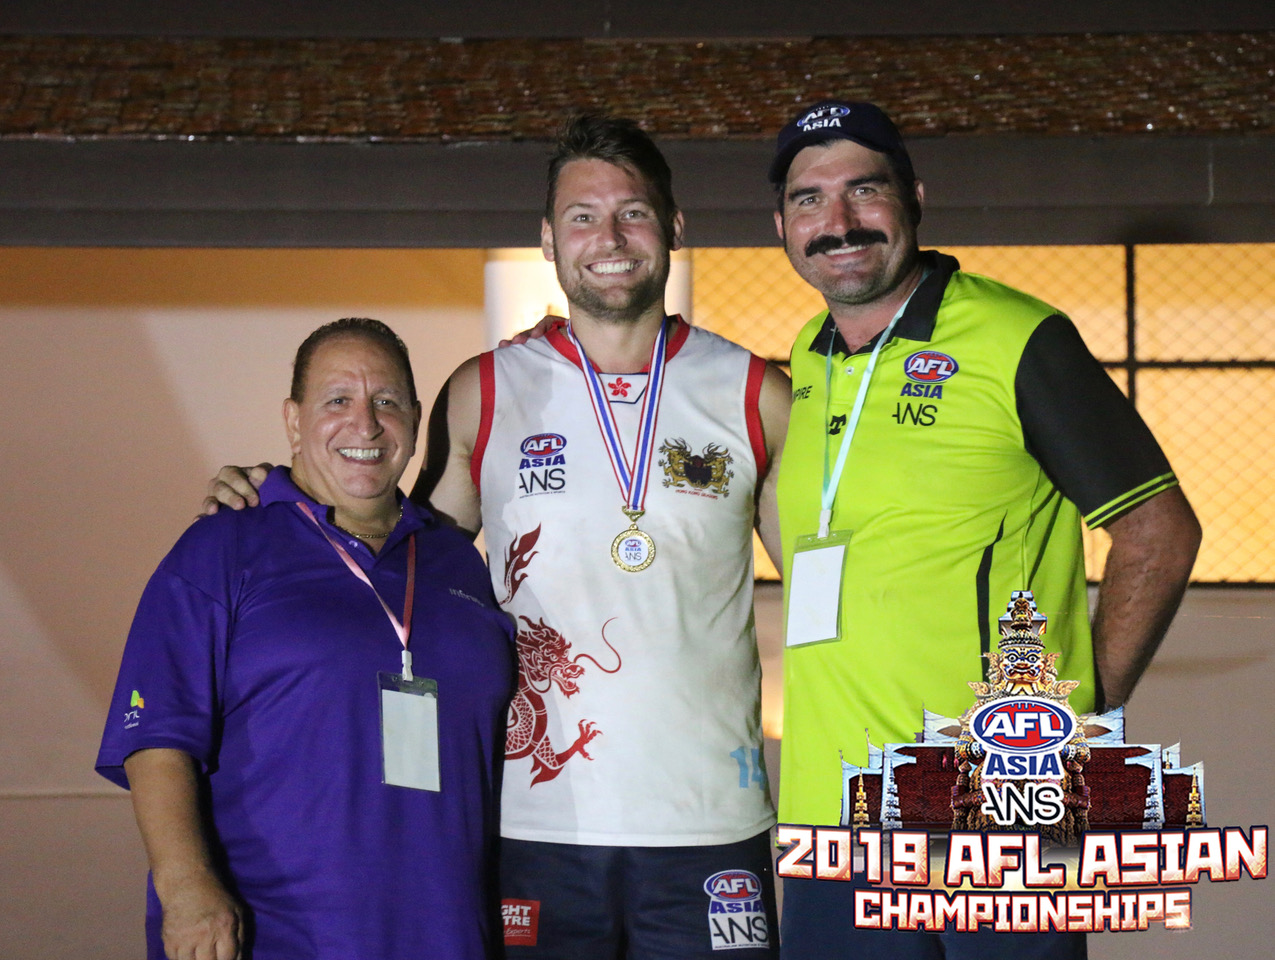 Sam Agar Player of the 2019 AFL Asian Championships